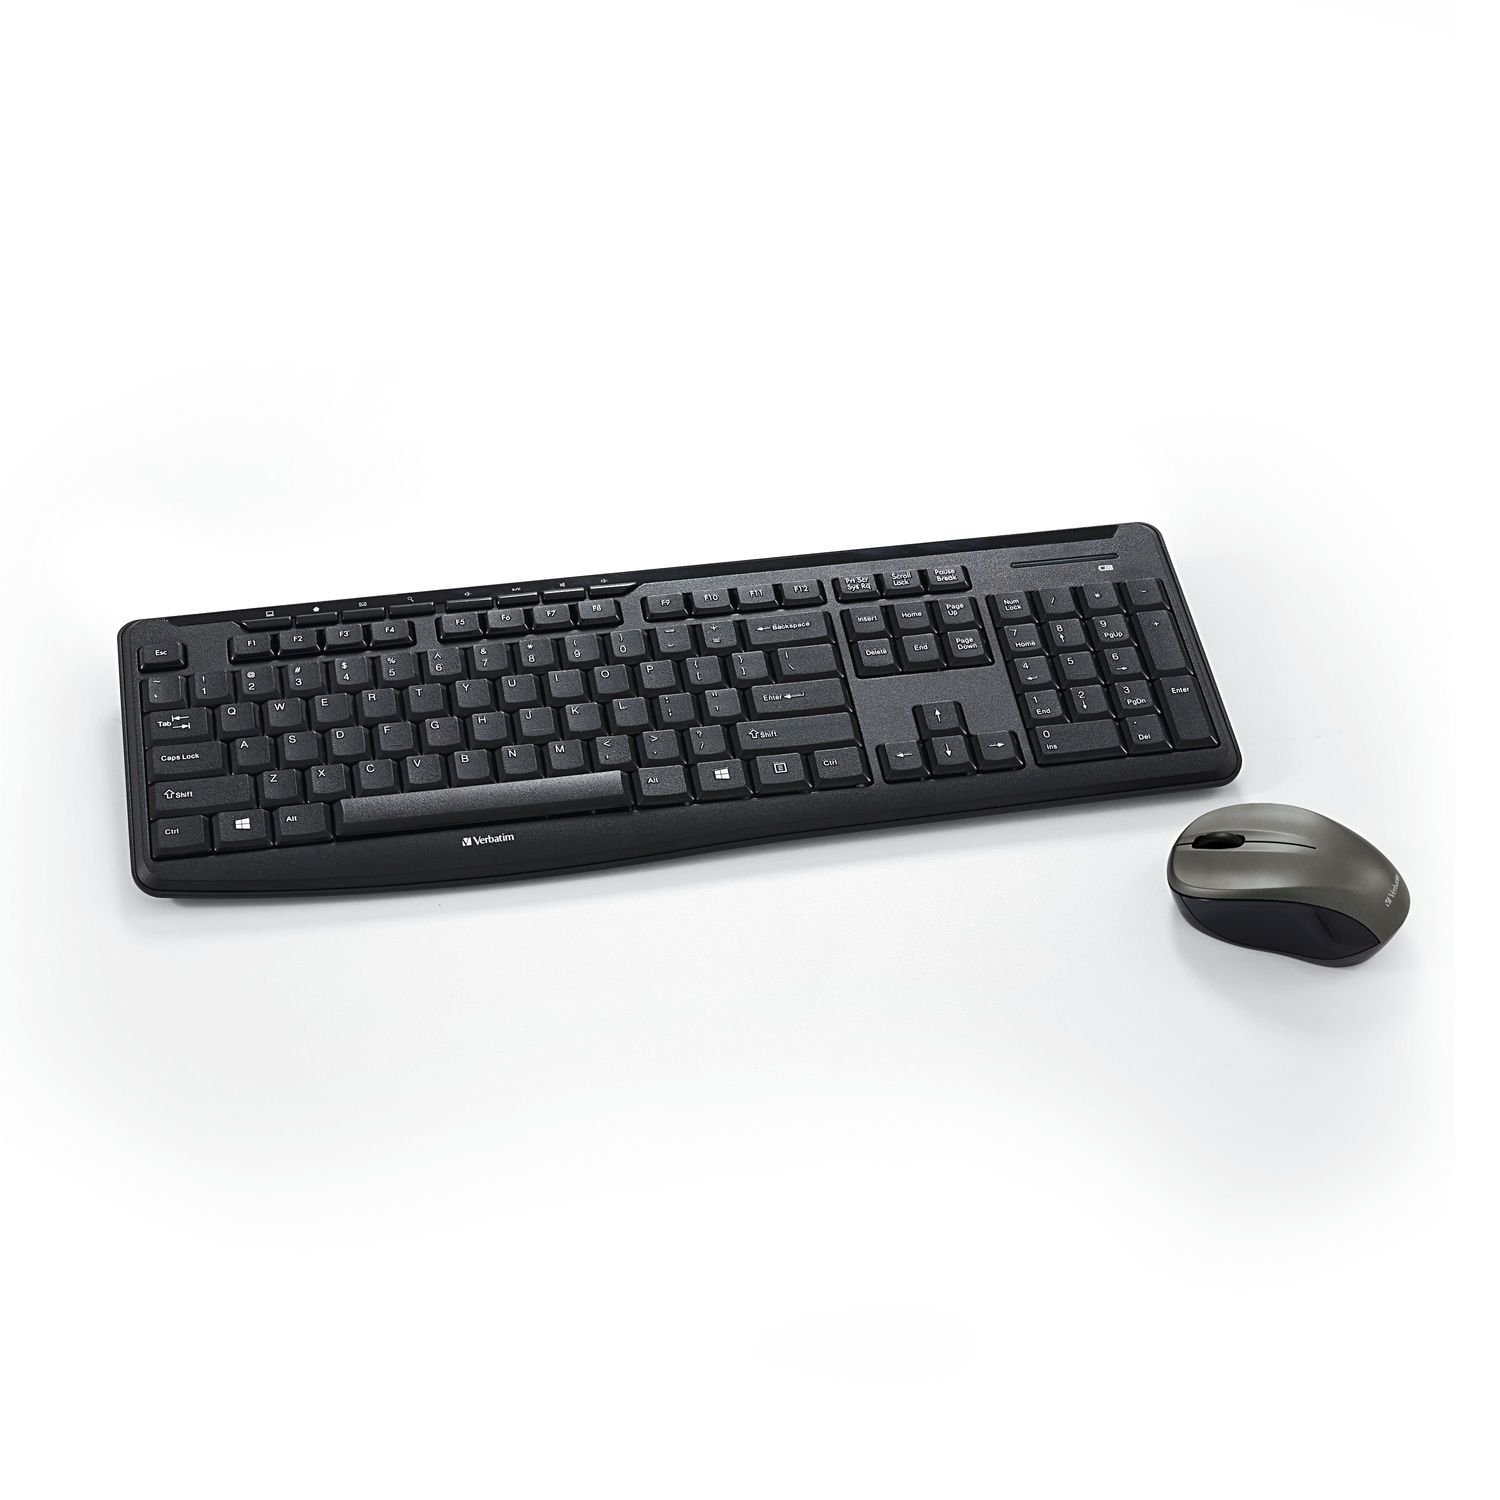 Verbatim Wireless Silent Mouse & Keyboard Combo - 2.4GHz with Nano Receiver - Ergonomic, Noiseless, and Silent for Mac and Windows - Graphite (99779)